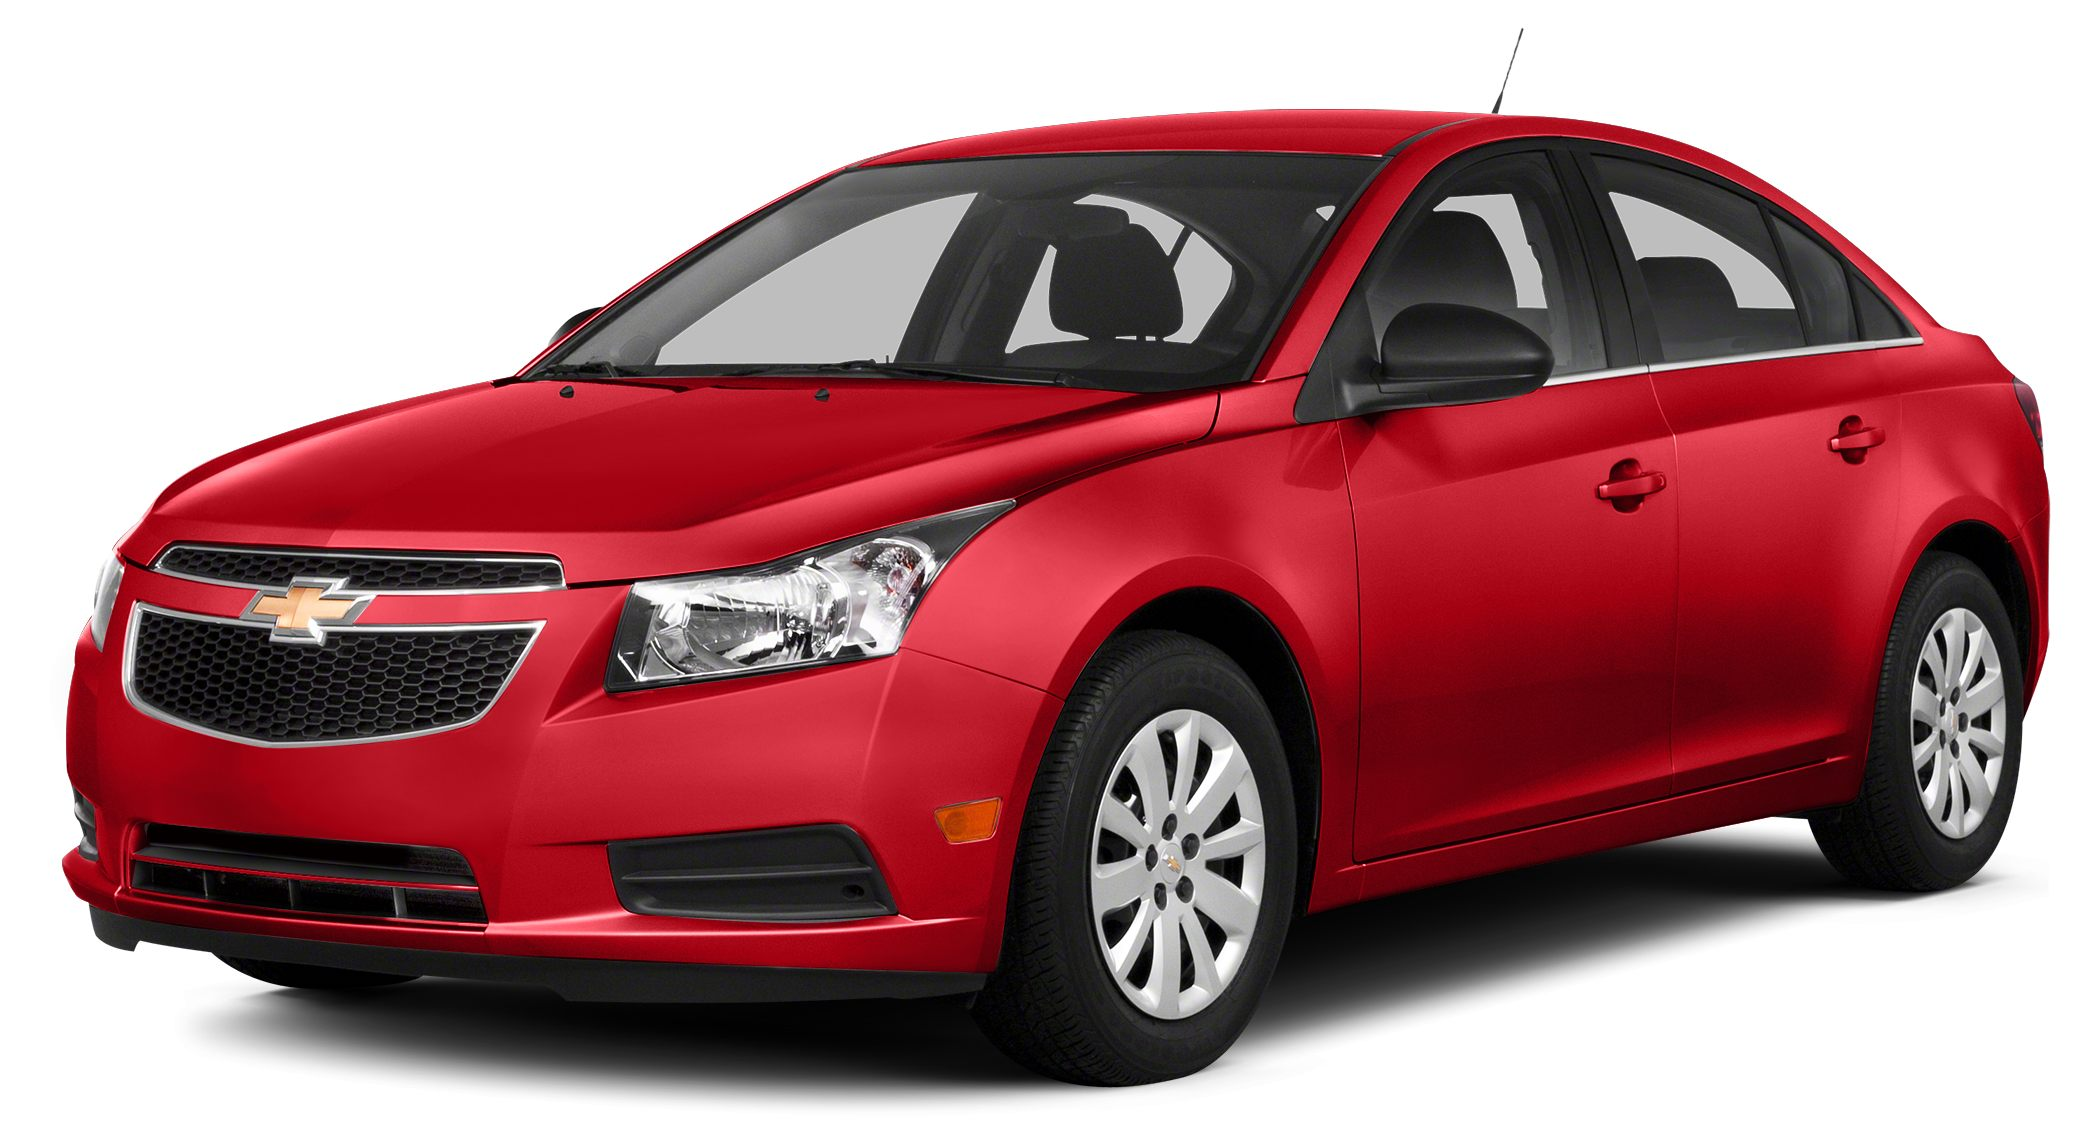 2014 Chevrolet Cruze LS 2 YEARS MAINTENANCE INCLUDED WITH EVERY VEHICLE PURCHASED This vehicle is